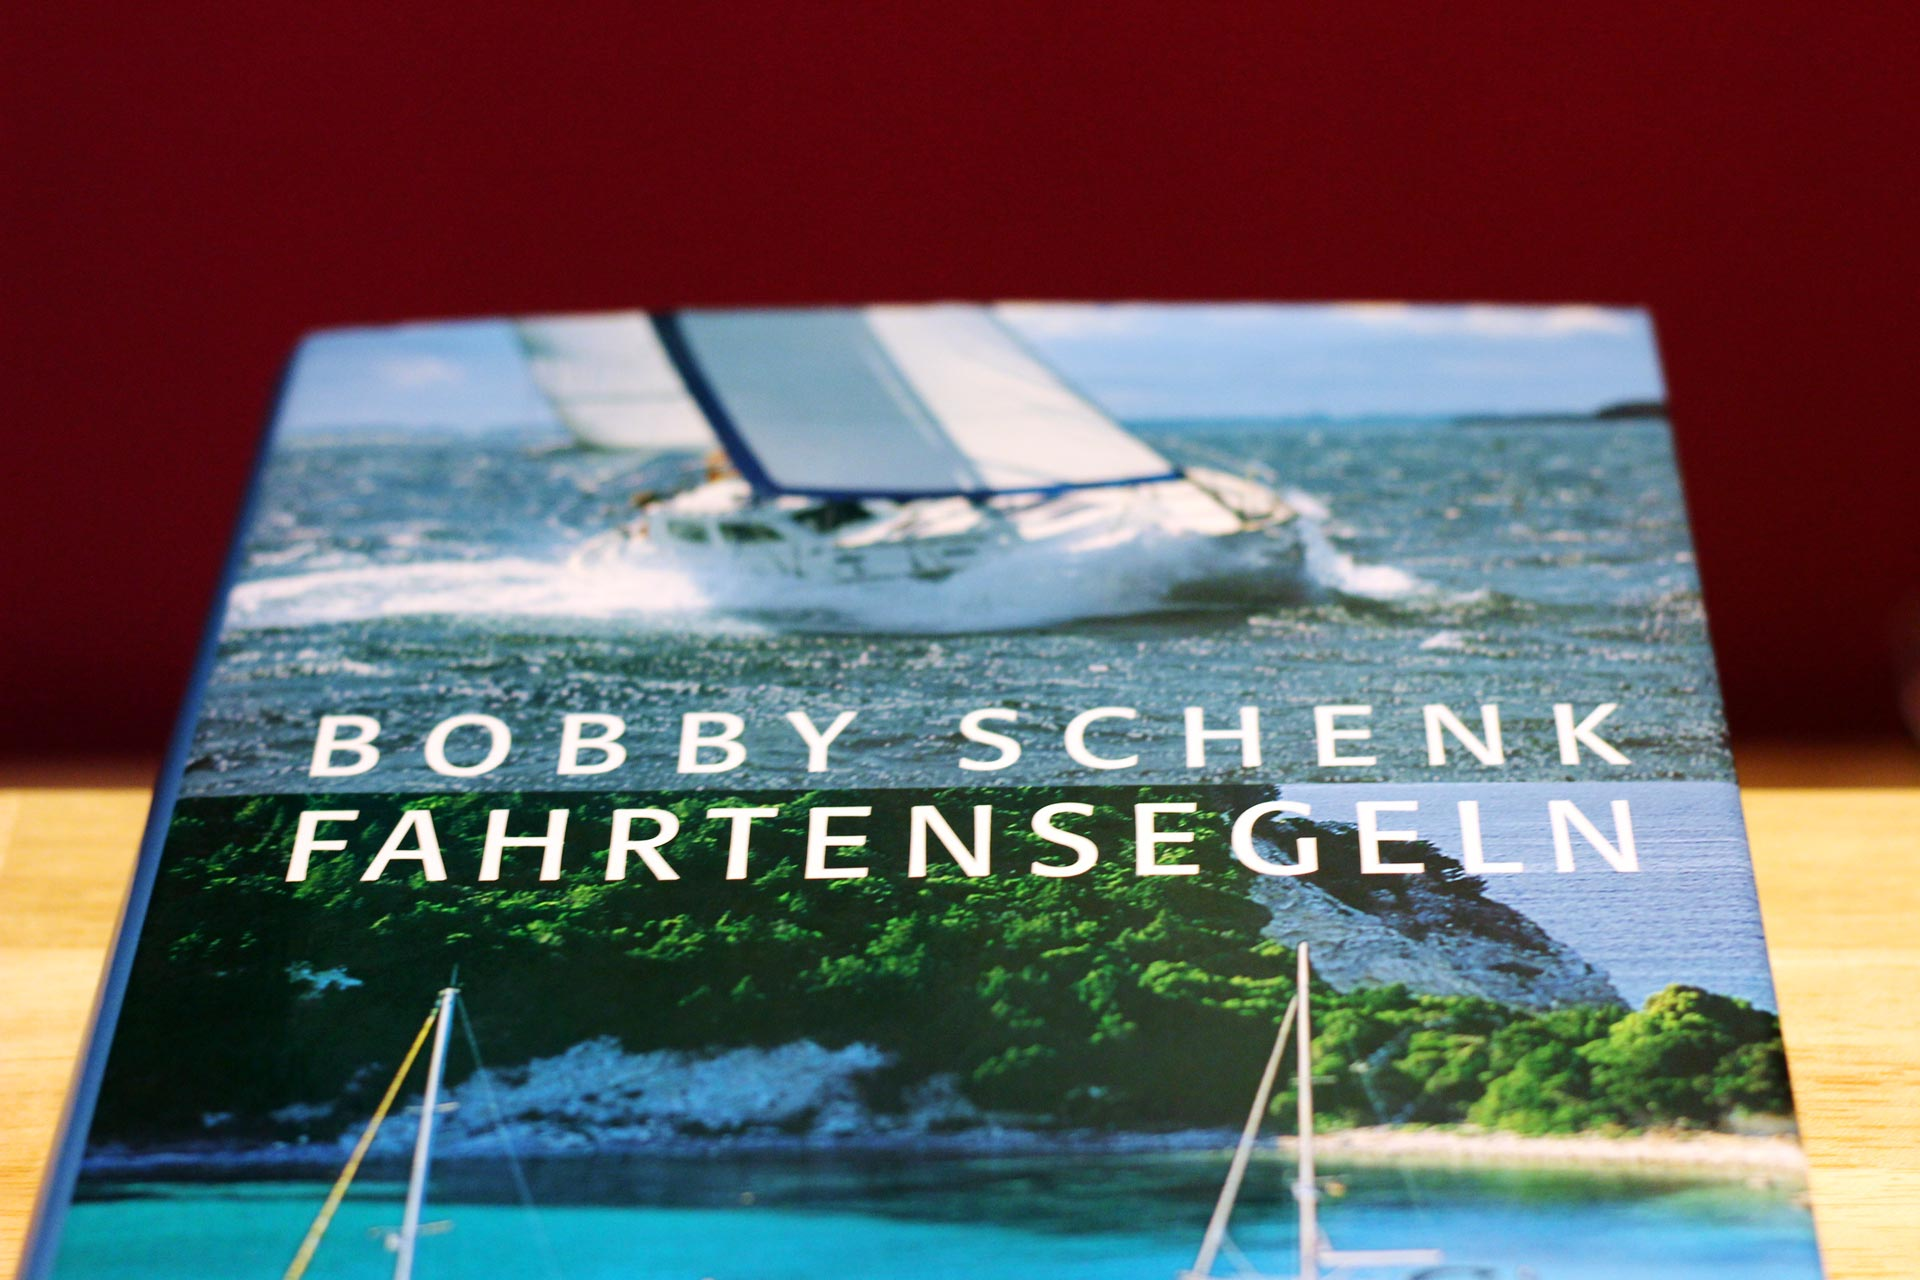 Bobby Schenk´s books are the perfect inspiration.